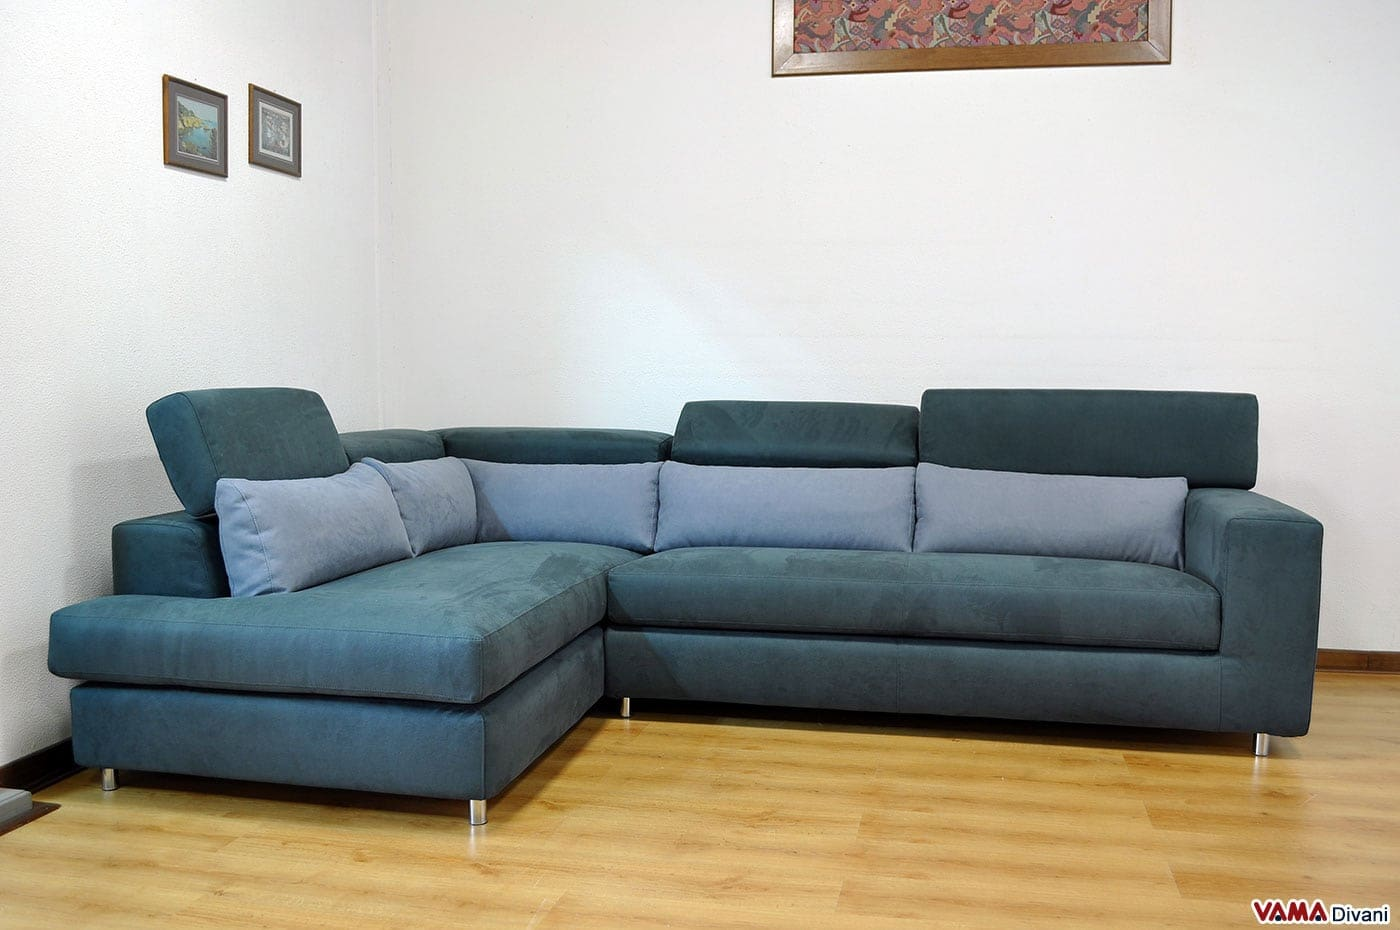 Poltrone e sofa catanzaro awesome jasper with poltrone e sofa catanzaro simple poltrona - Divano angolare poltrone e sofa ...